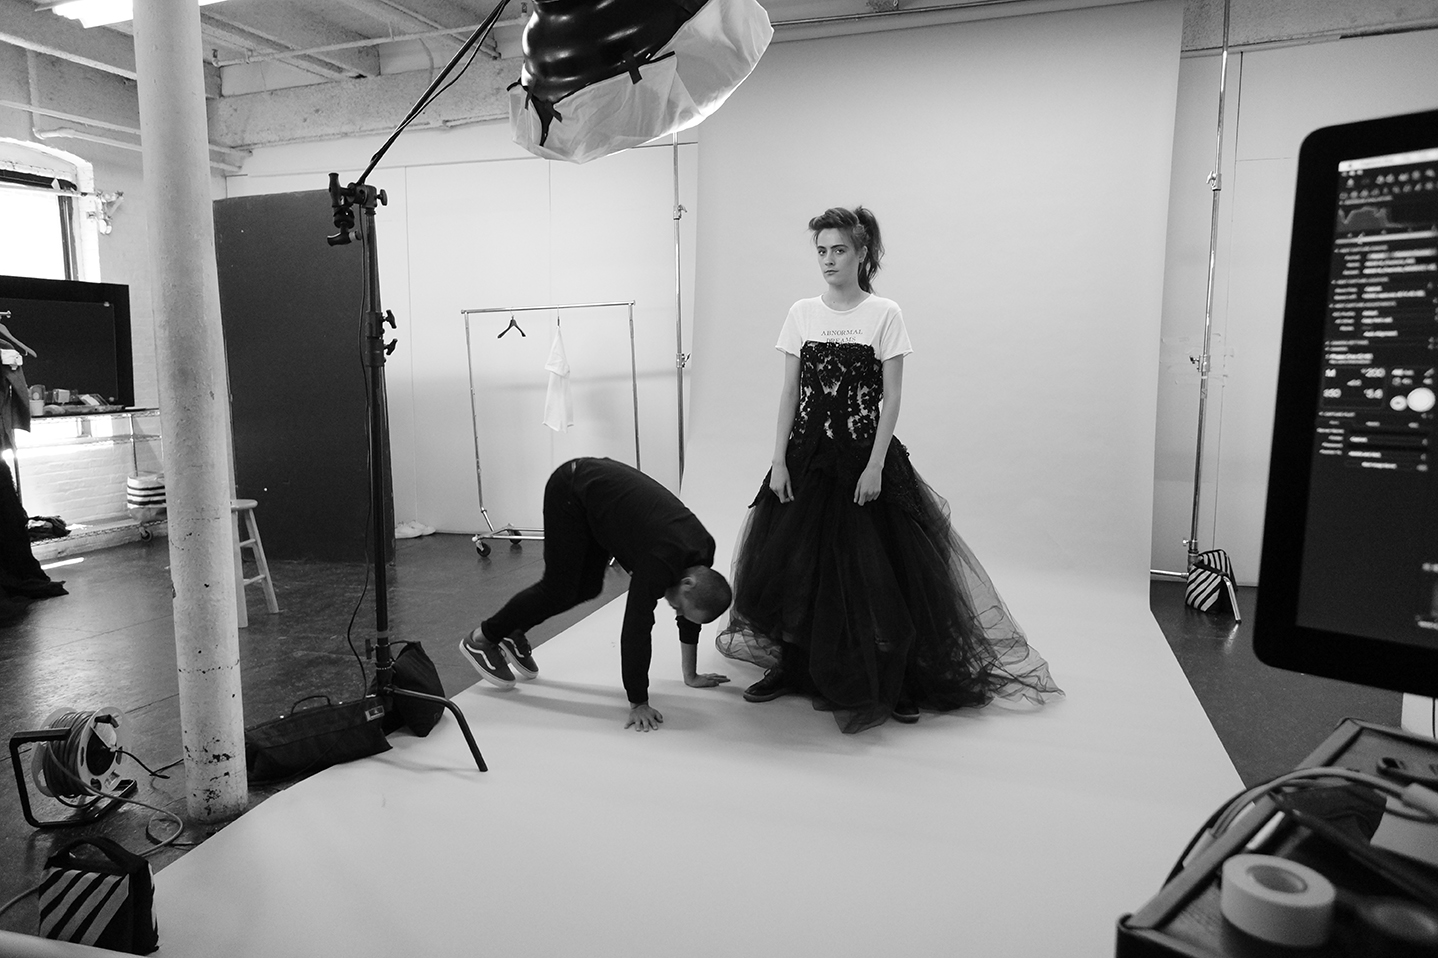 Grayson-Hoffman-Behind-The-Scenes-New-York-Studio-IMG-Women-Models-LIC-Studio-Long-Isalnd-City-Fashion-Images-On-Set-3